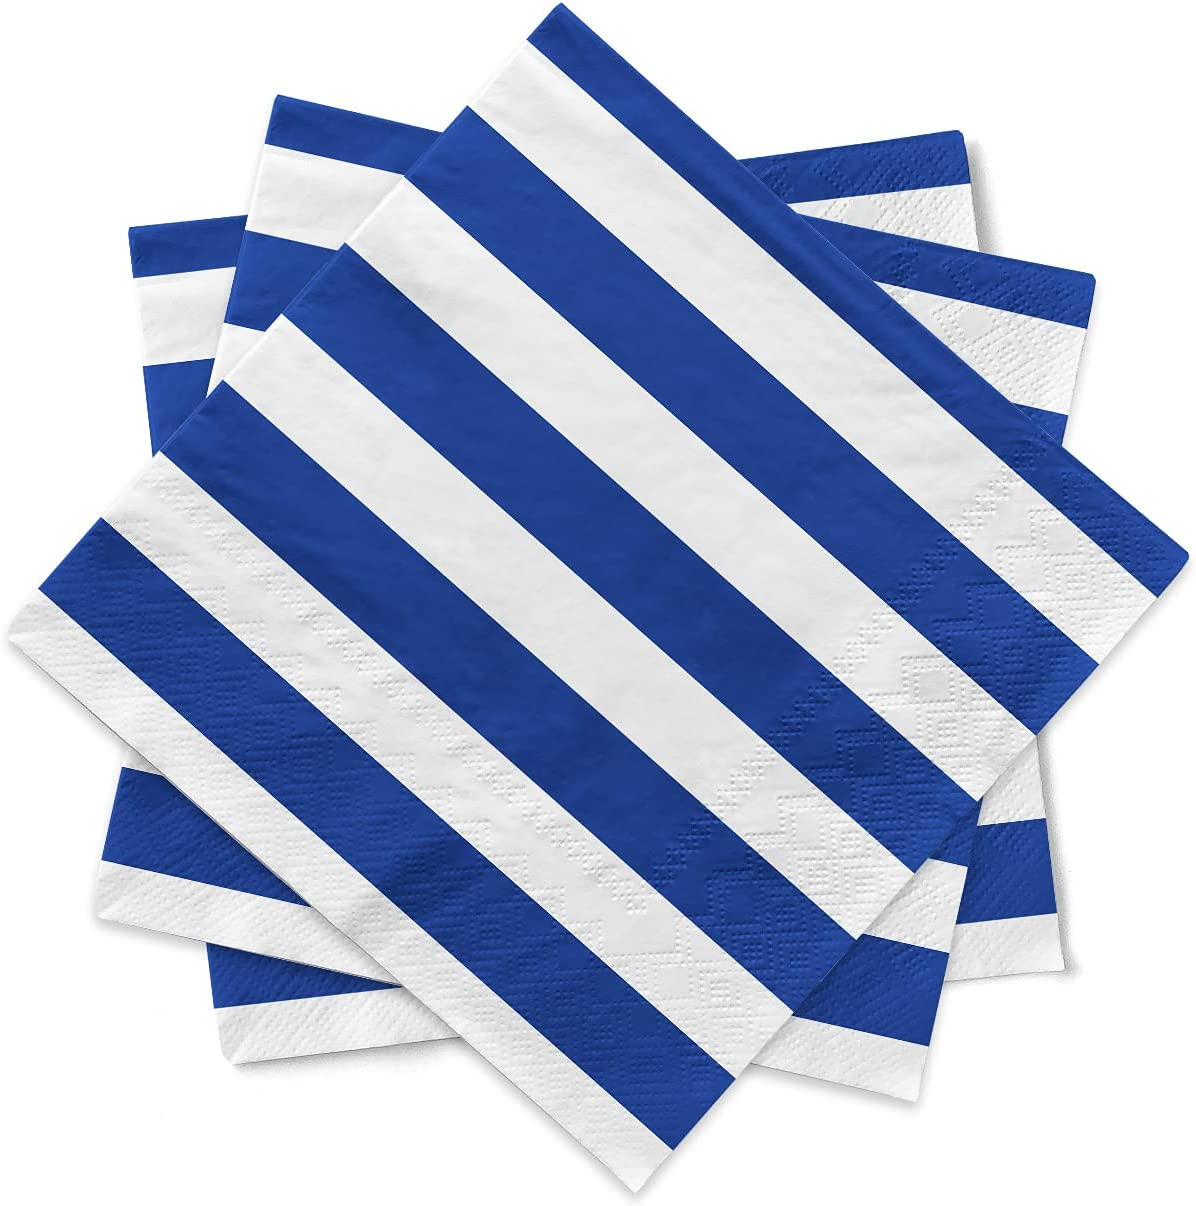 Gatherfun Disposable Paper Napkins 3-ply Blue and White Stripe Beverage Napkins for Dinner, Picnic, Birthday Party(6.5X6.5inches, 20-Pack)